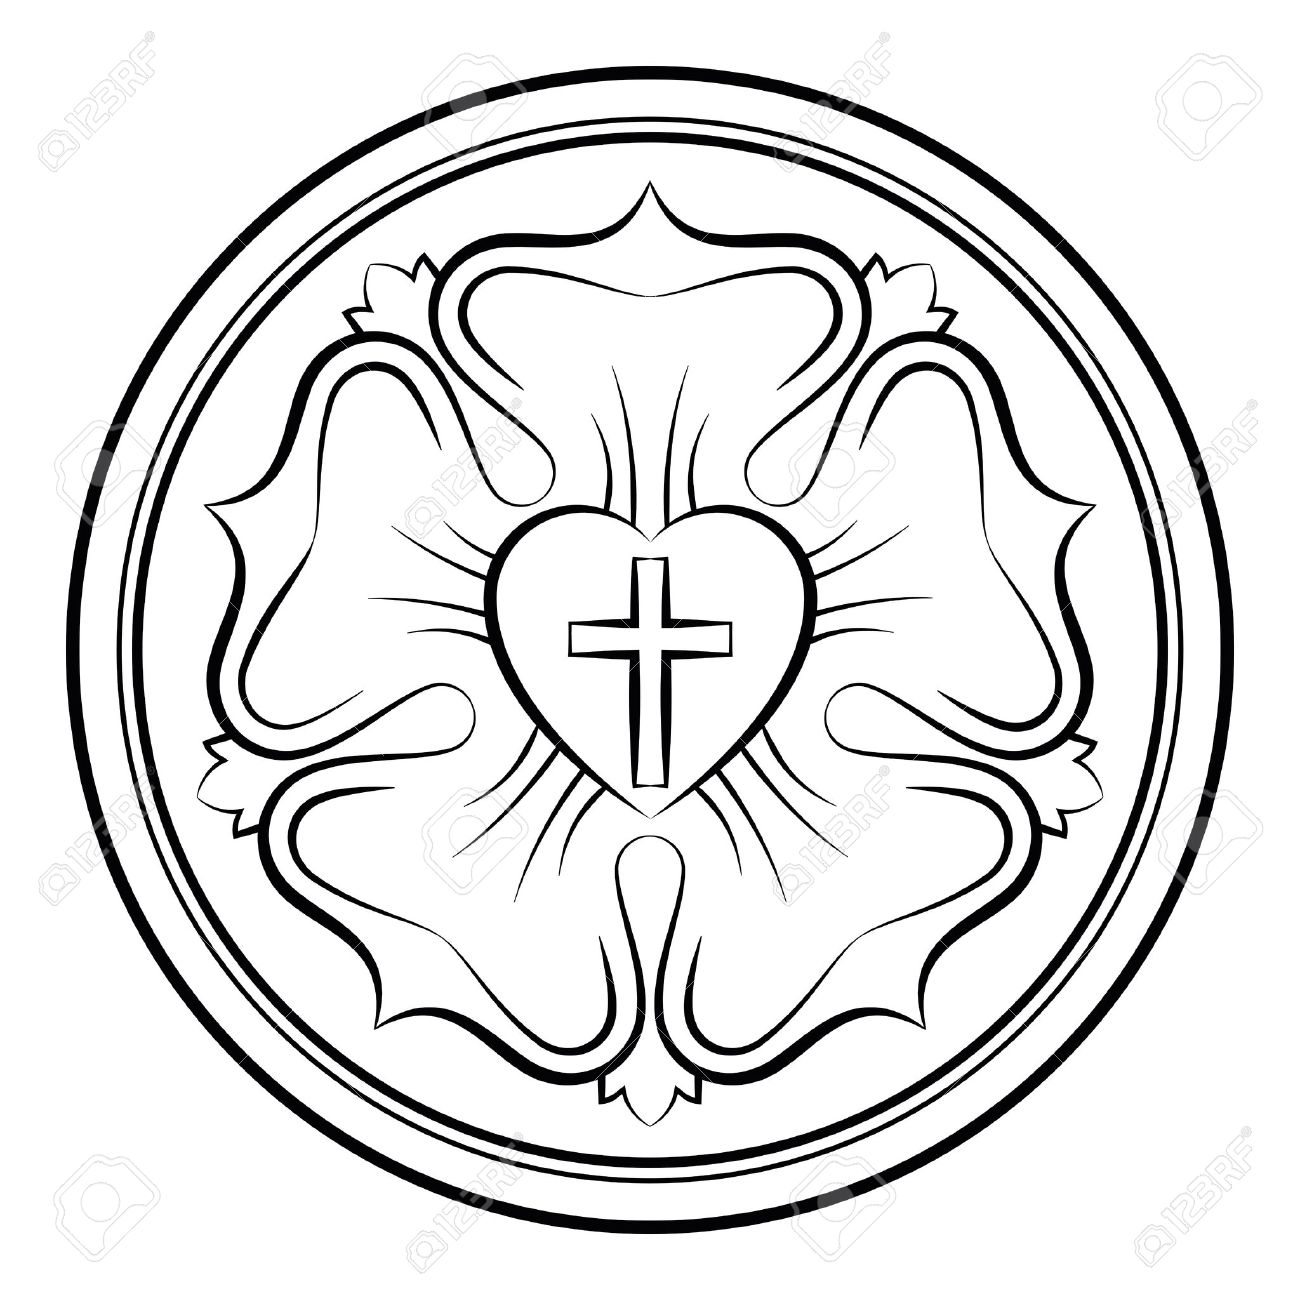 Luther rose monochrome calligraphic illustration also luther luther rose monochrome calligraphic illustration also luther seal symbol of lutheranism expression of buycottarizona